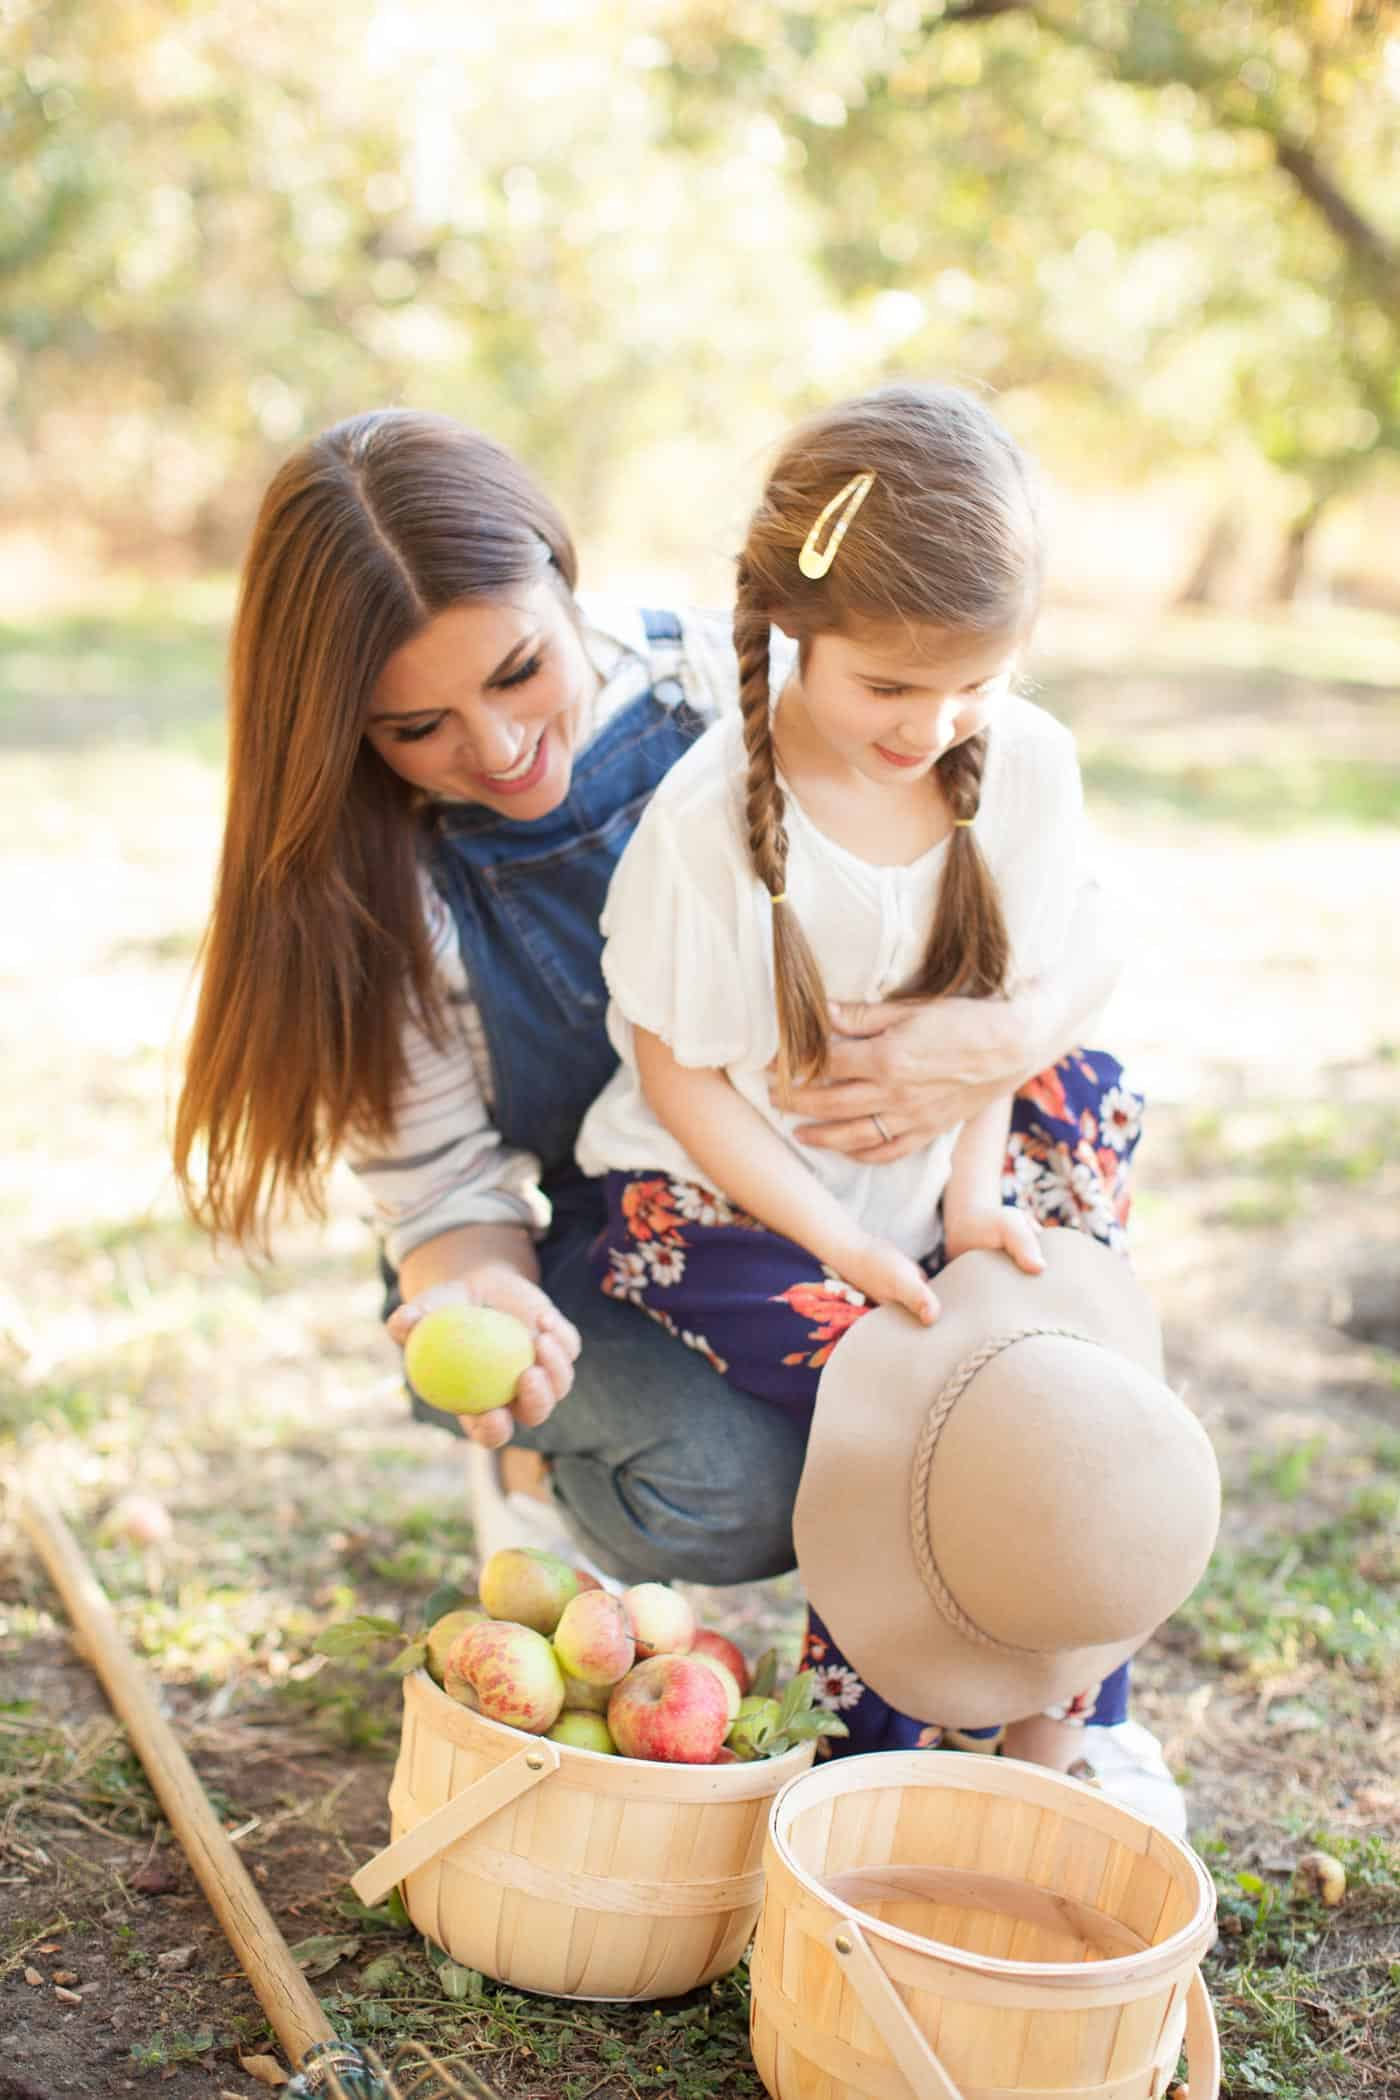 Apple of my Eye with Tiffani Thiessen • Photo by Morgan Pansing